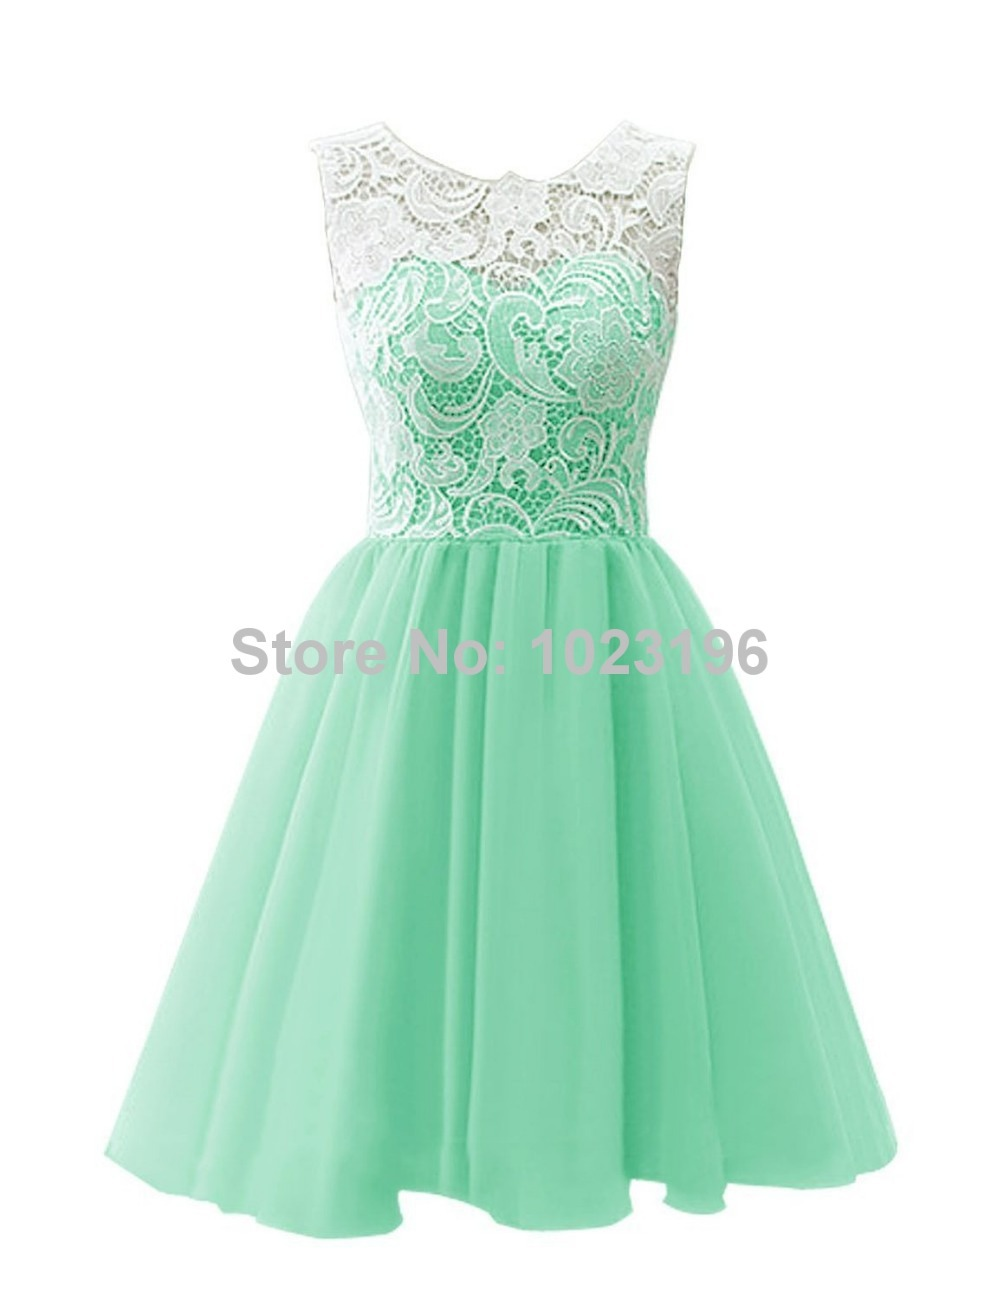 Compare Prices on Short Party Dresses for Juniors- Online Shopping ...